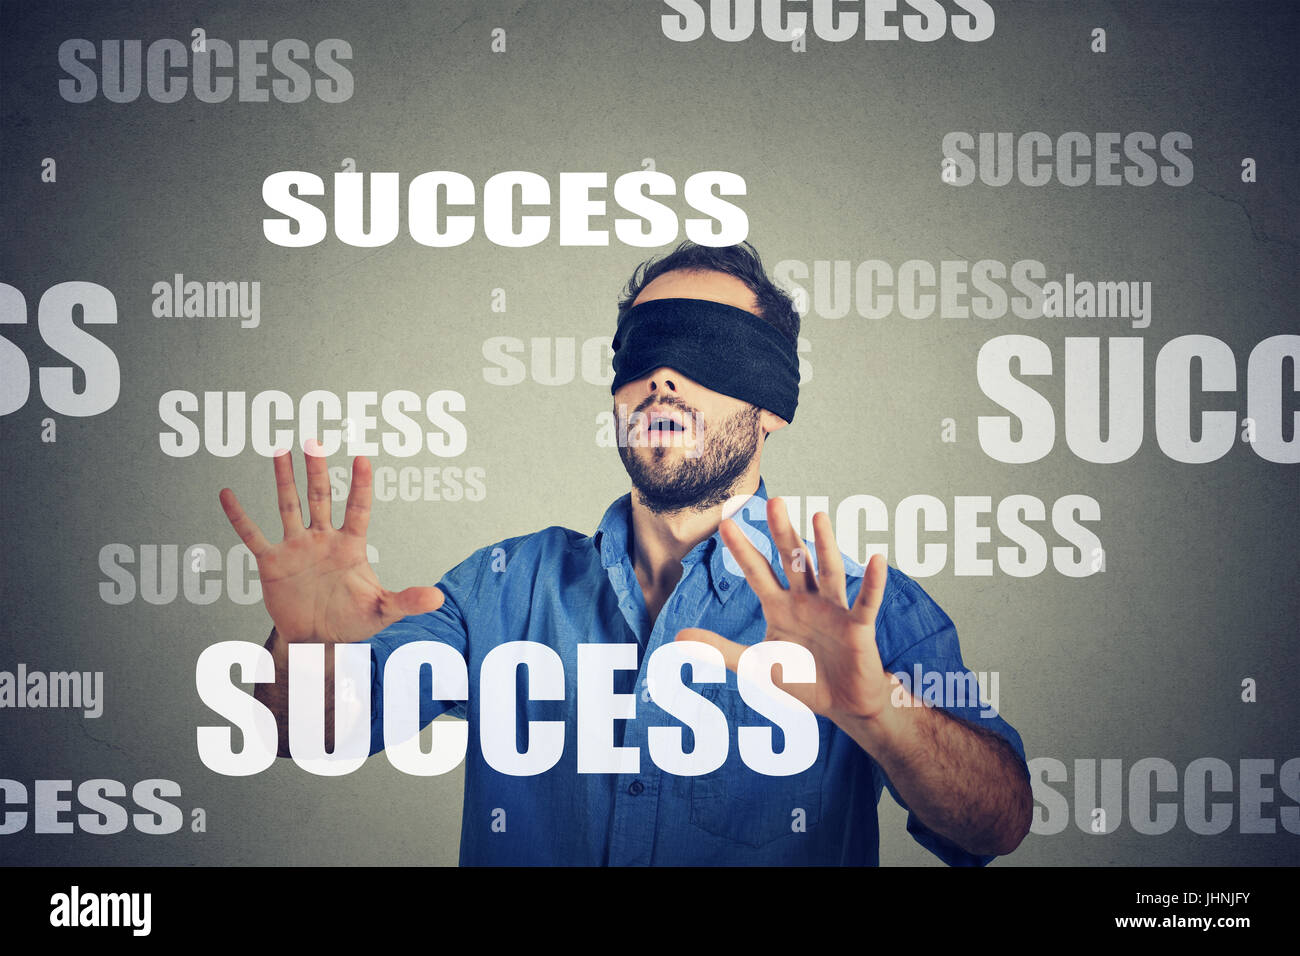 Blindfolded business man looking for success - Stock Image